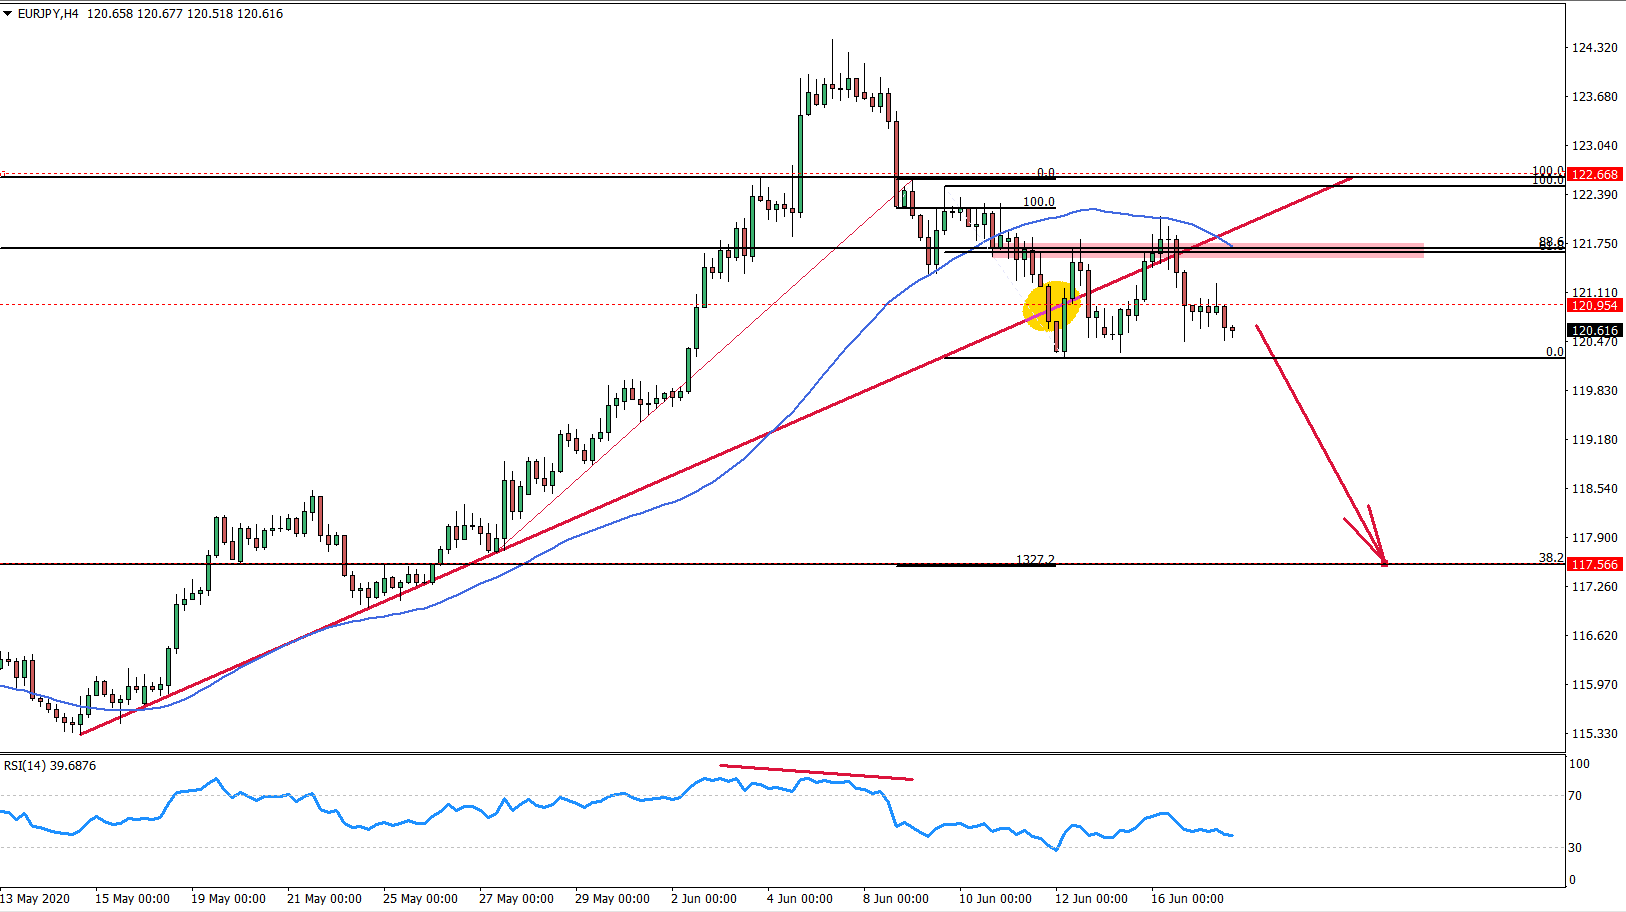 EURJPY 4hour chart June 17th 2020